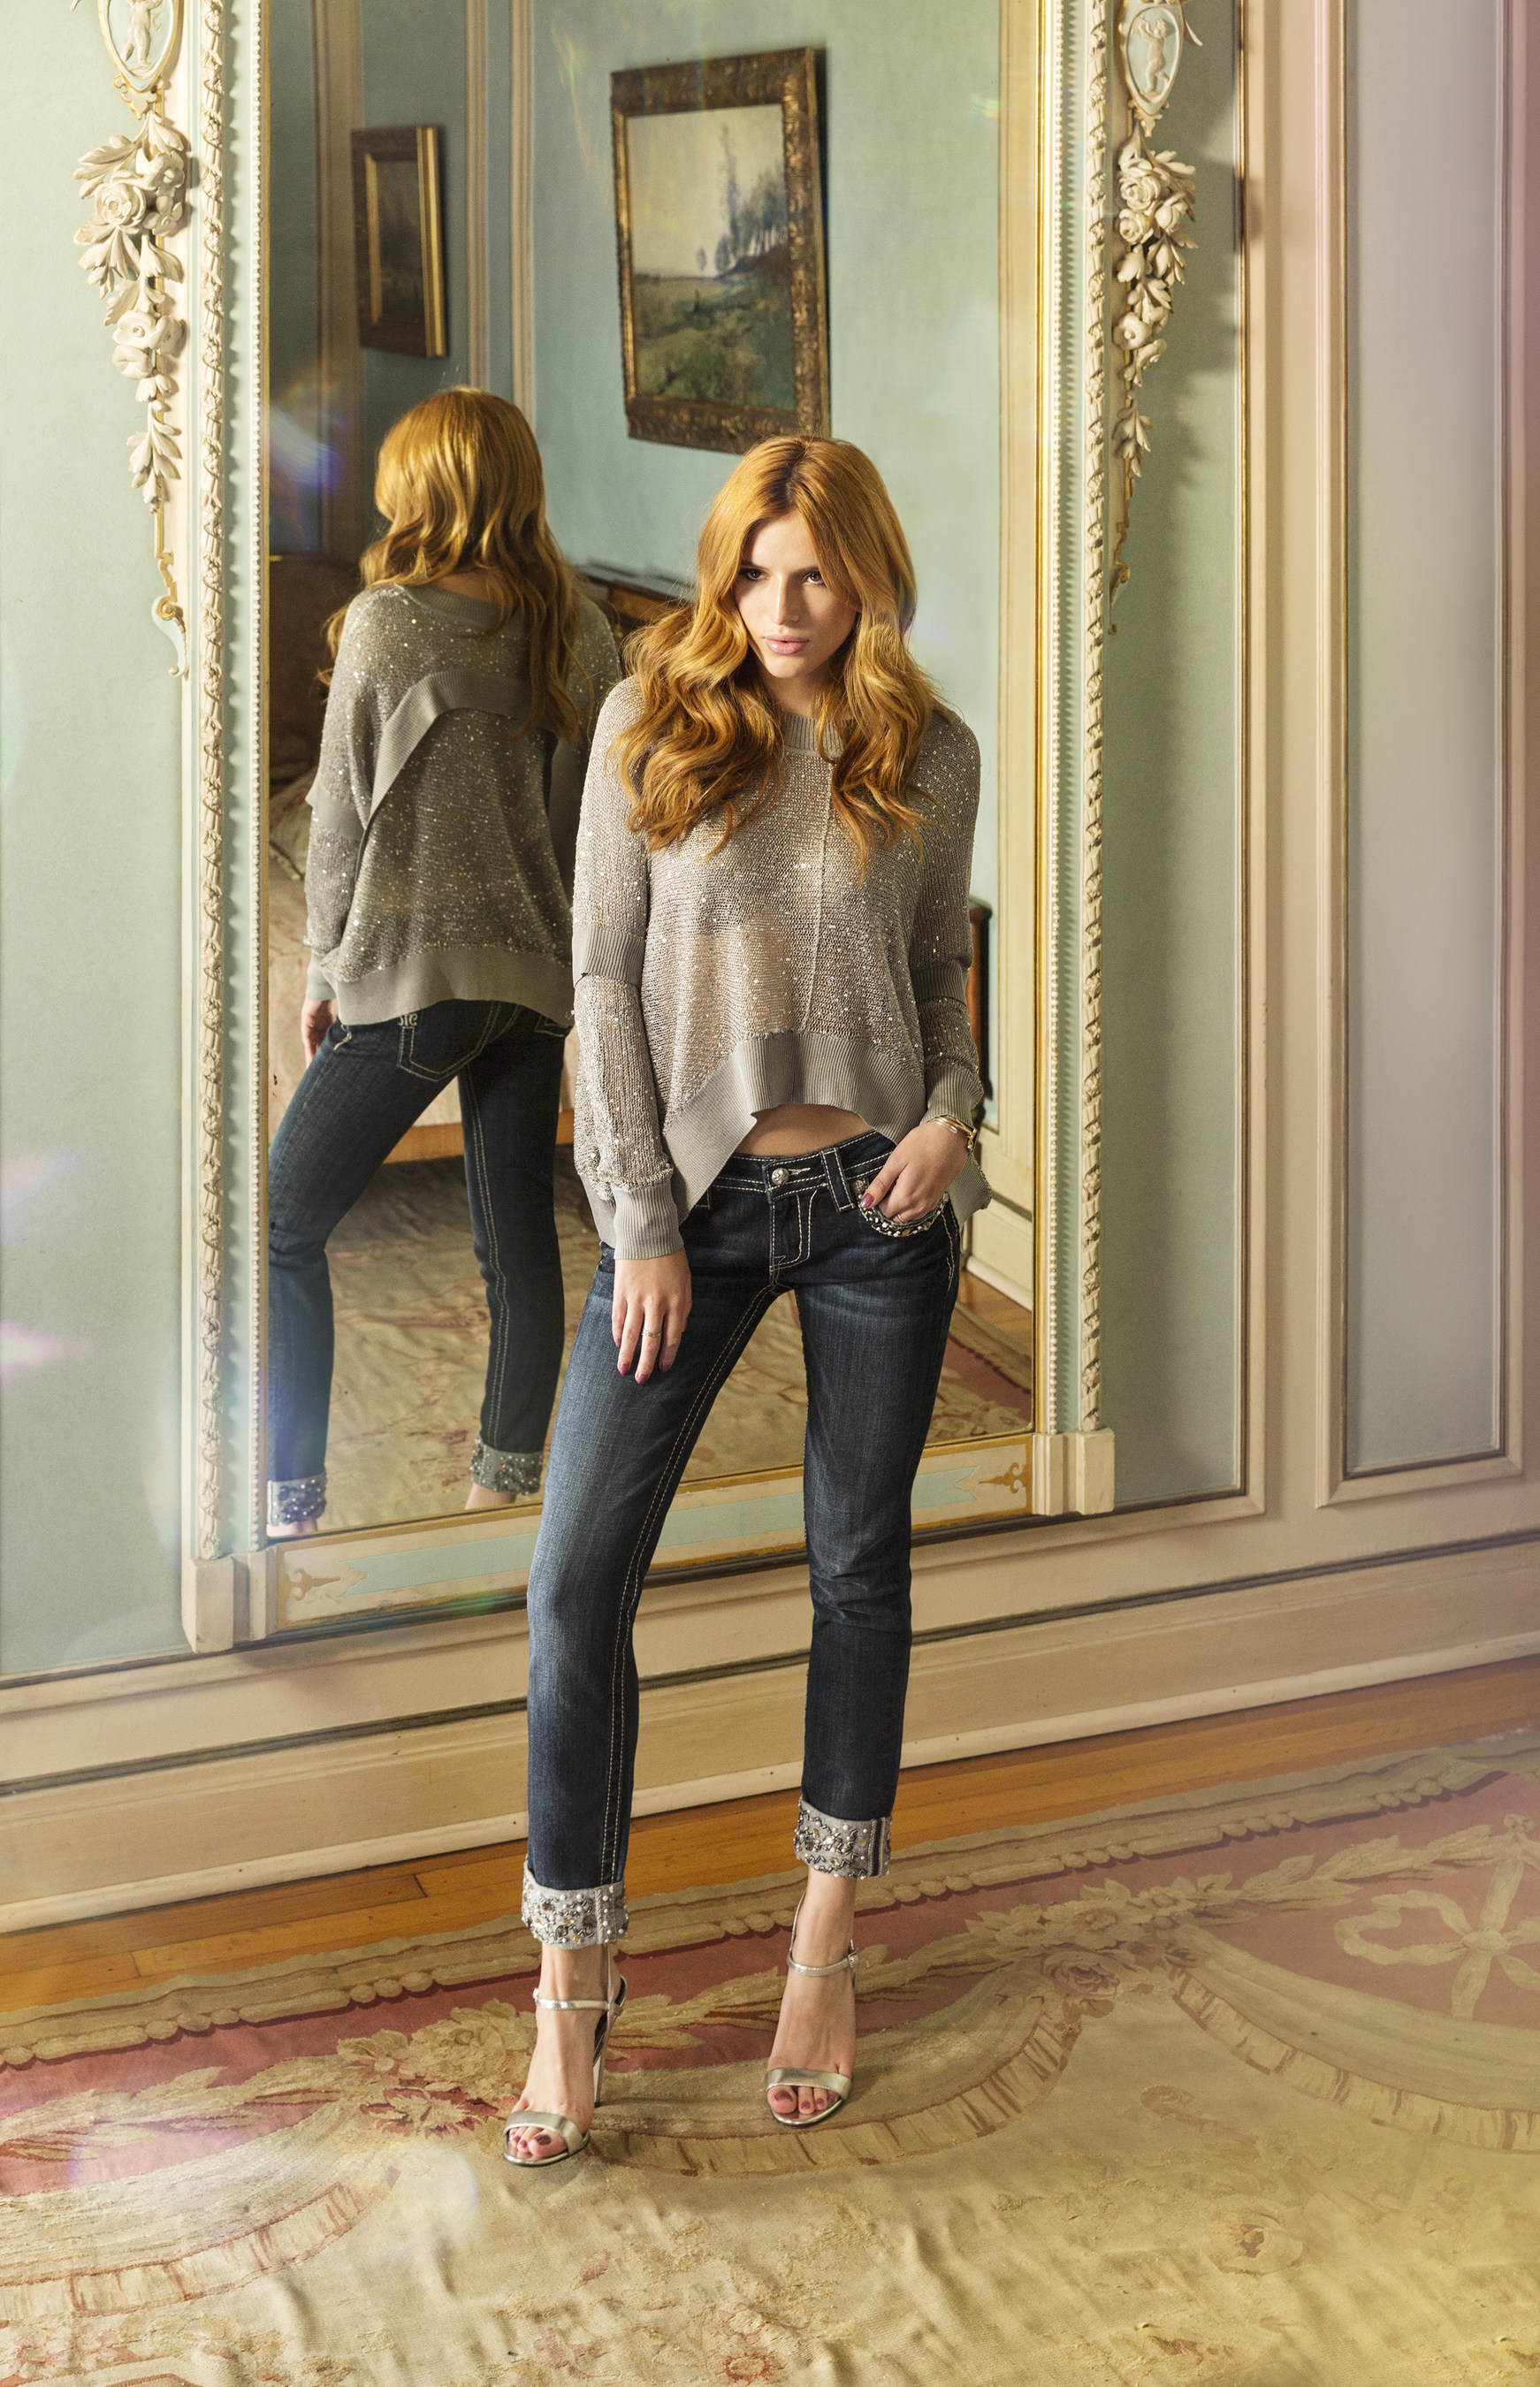 Bella Thorne for Miss Me Fall/Winter 2015 campaign, 'Let Yourself Shine'